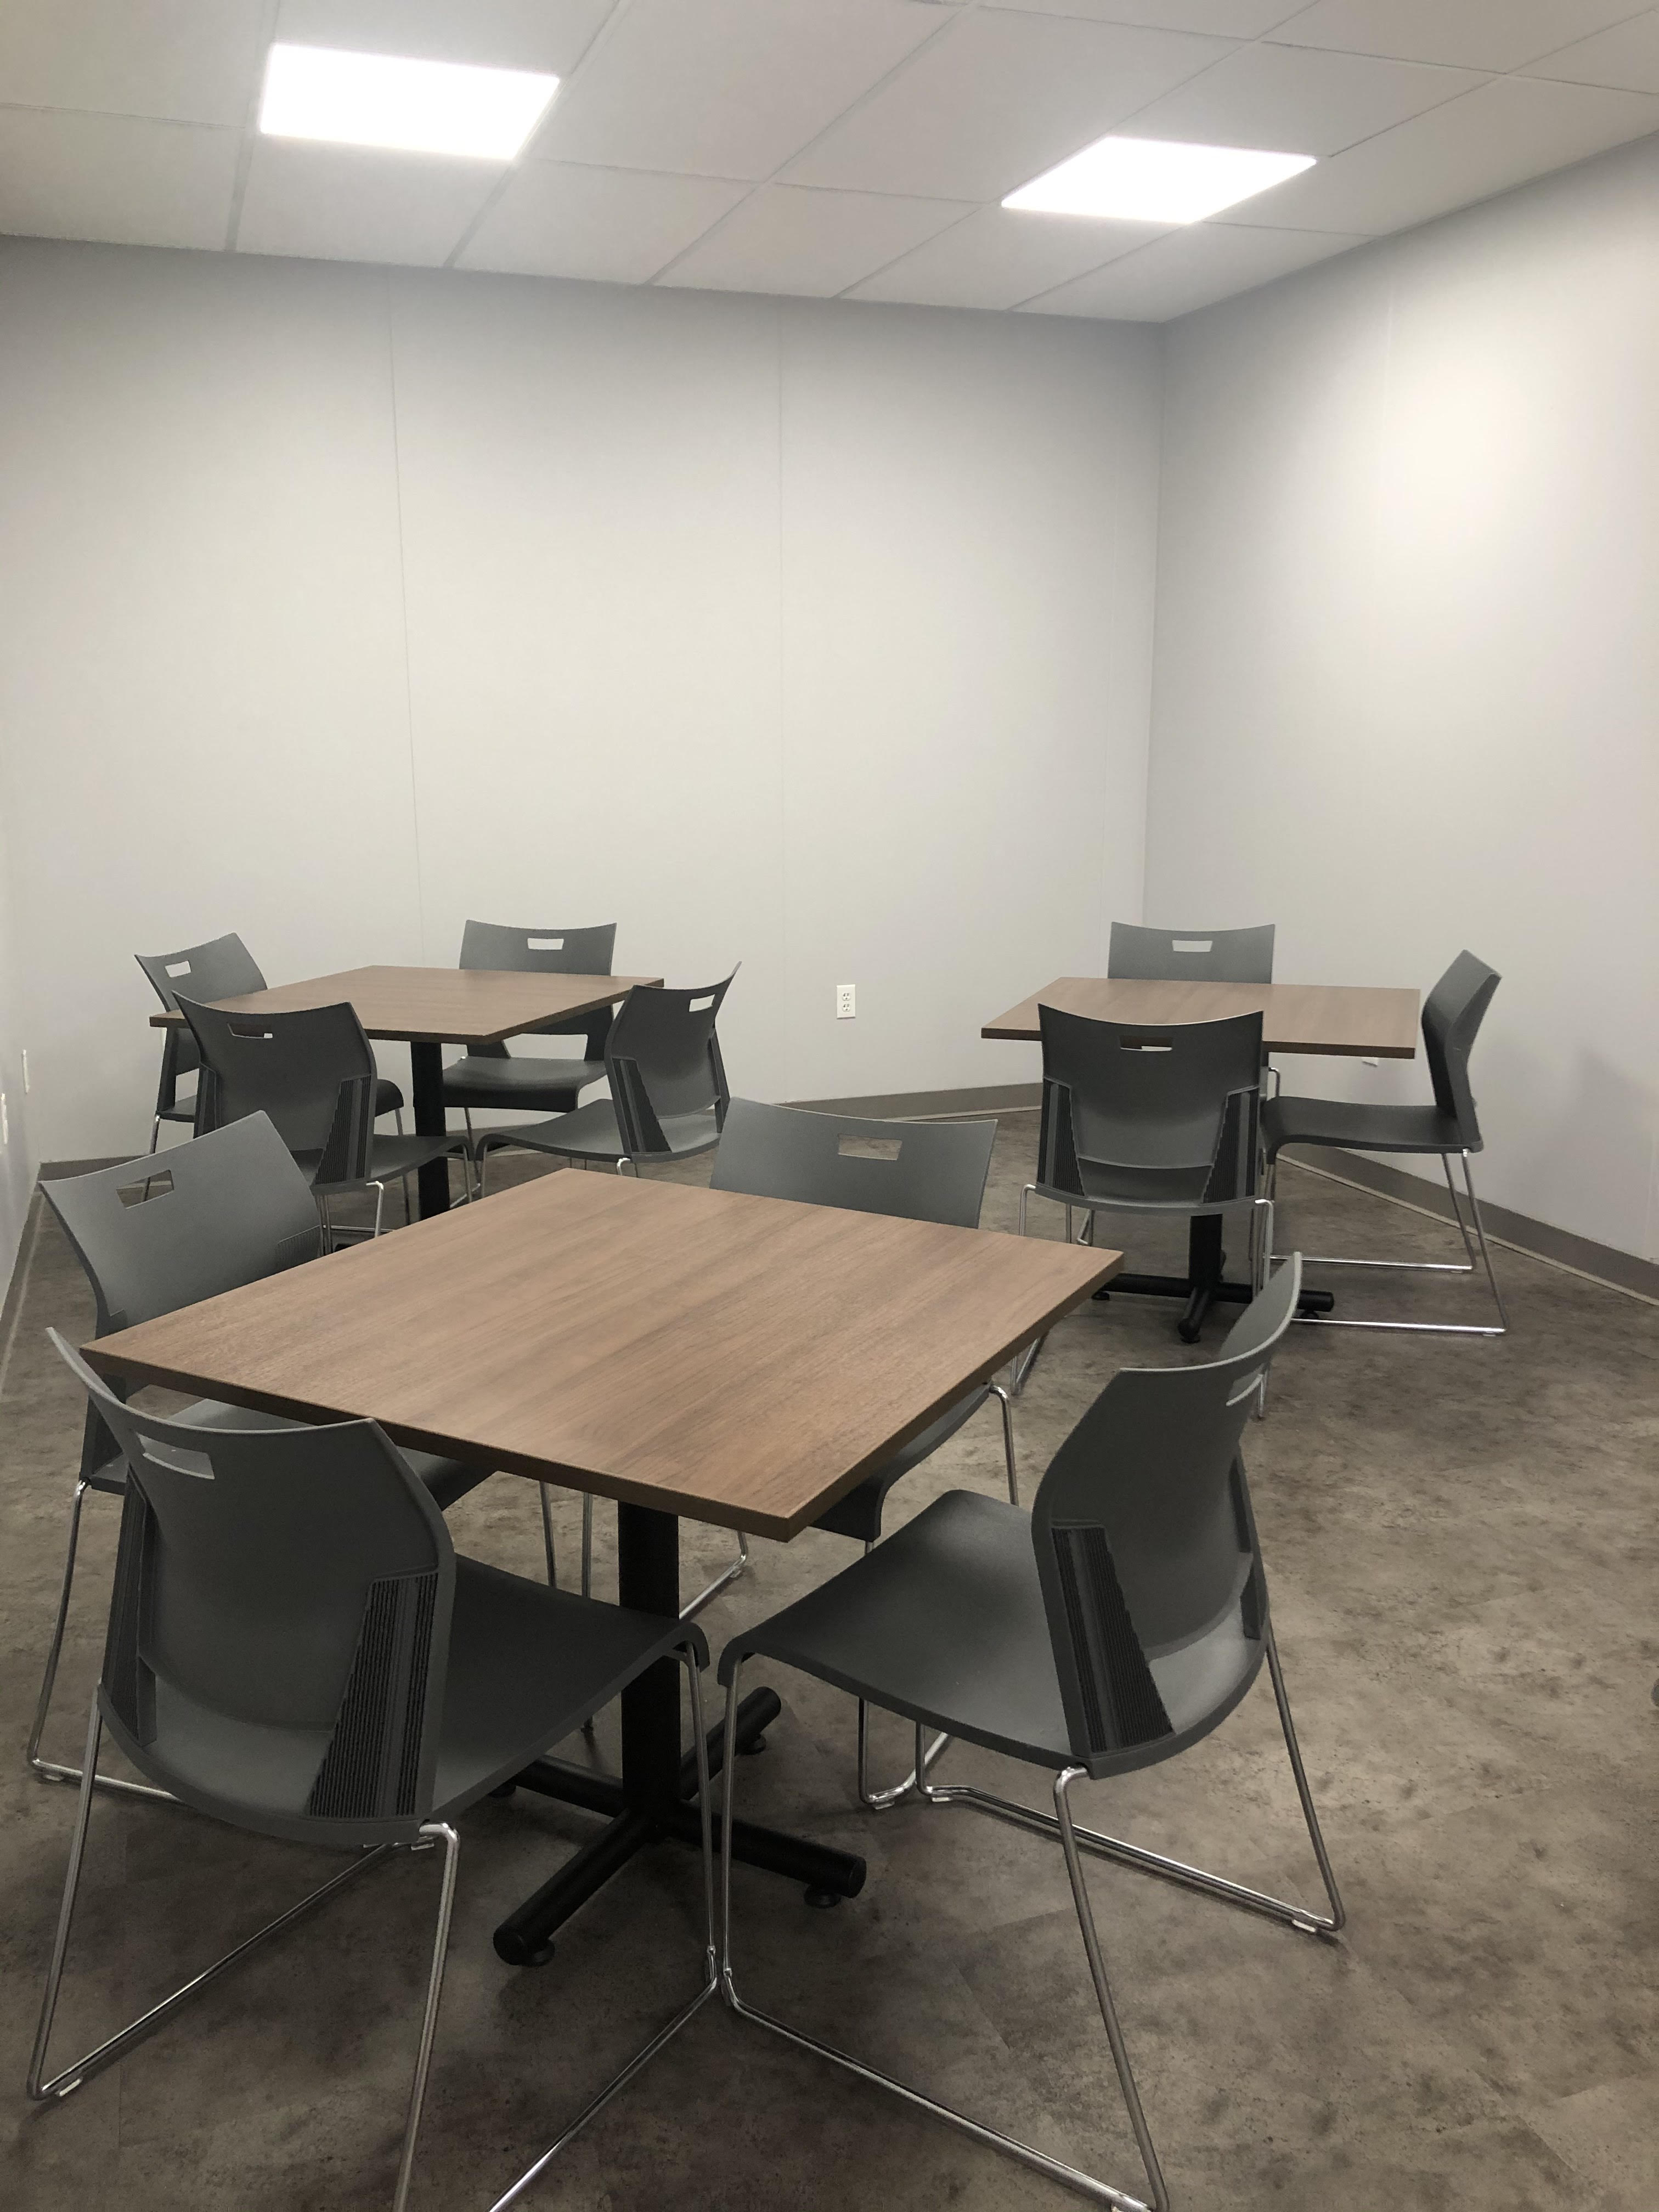 DRIVE Professional Building Lunch Room Seating